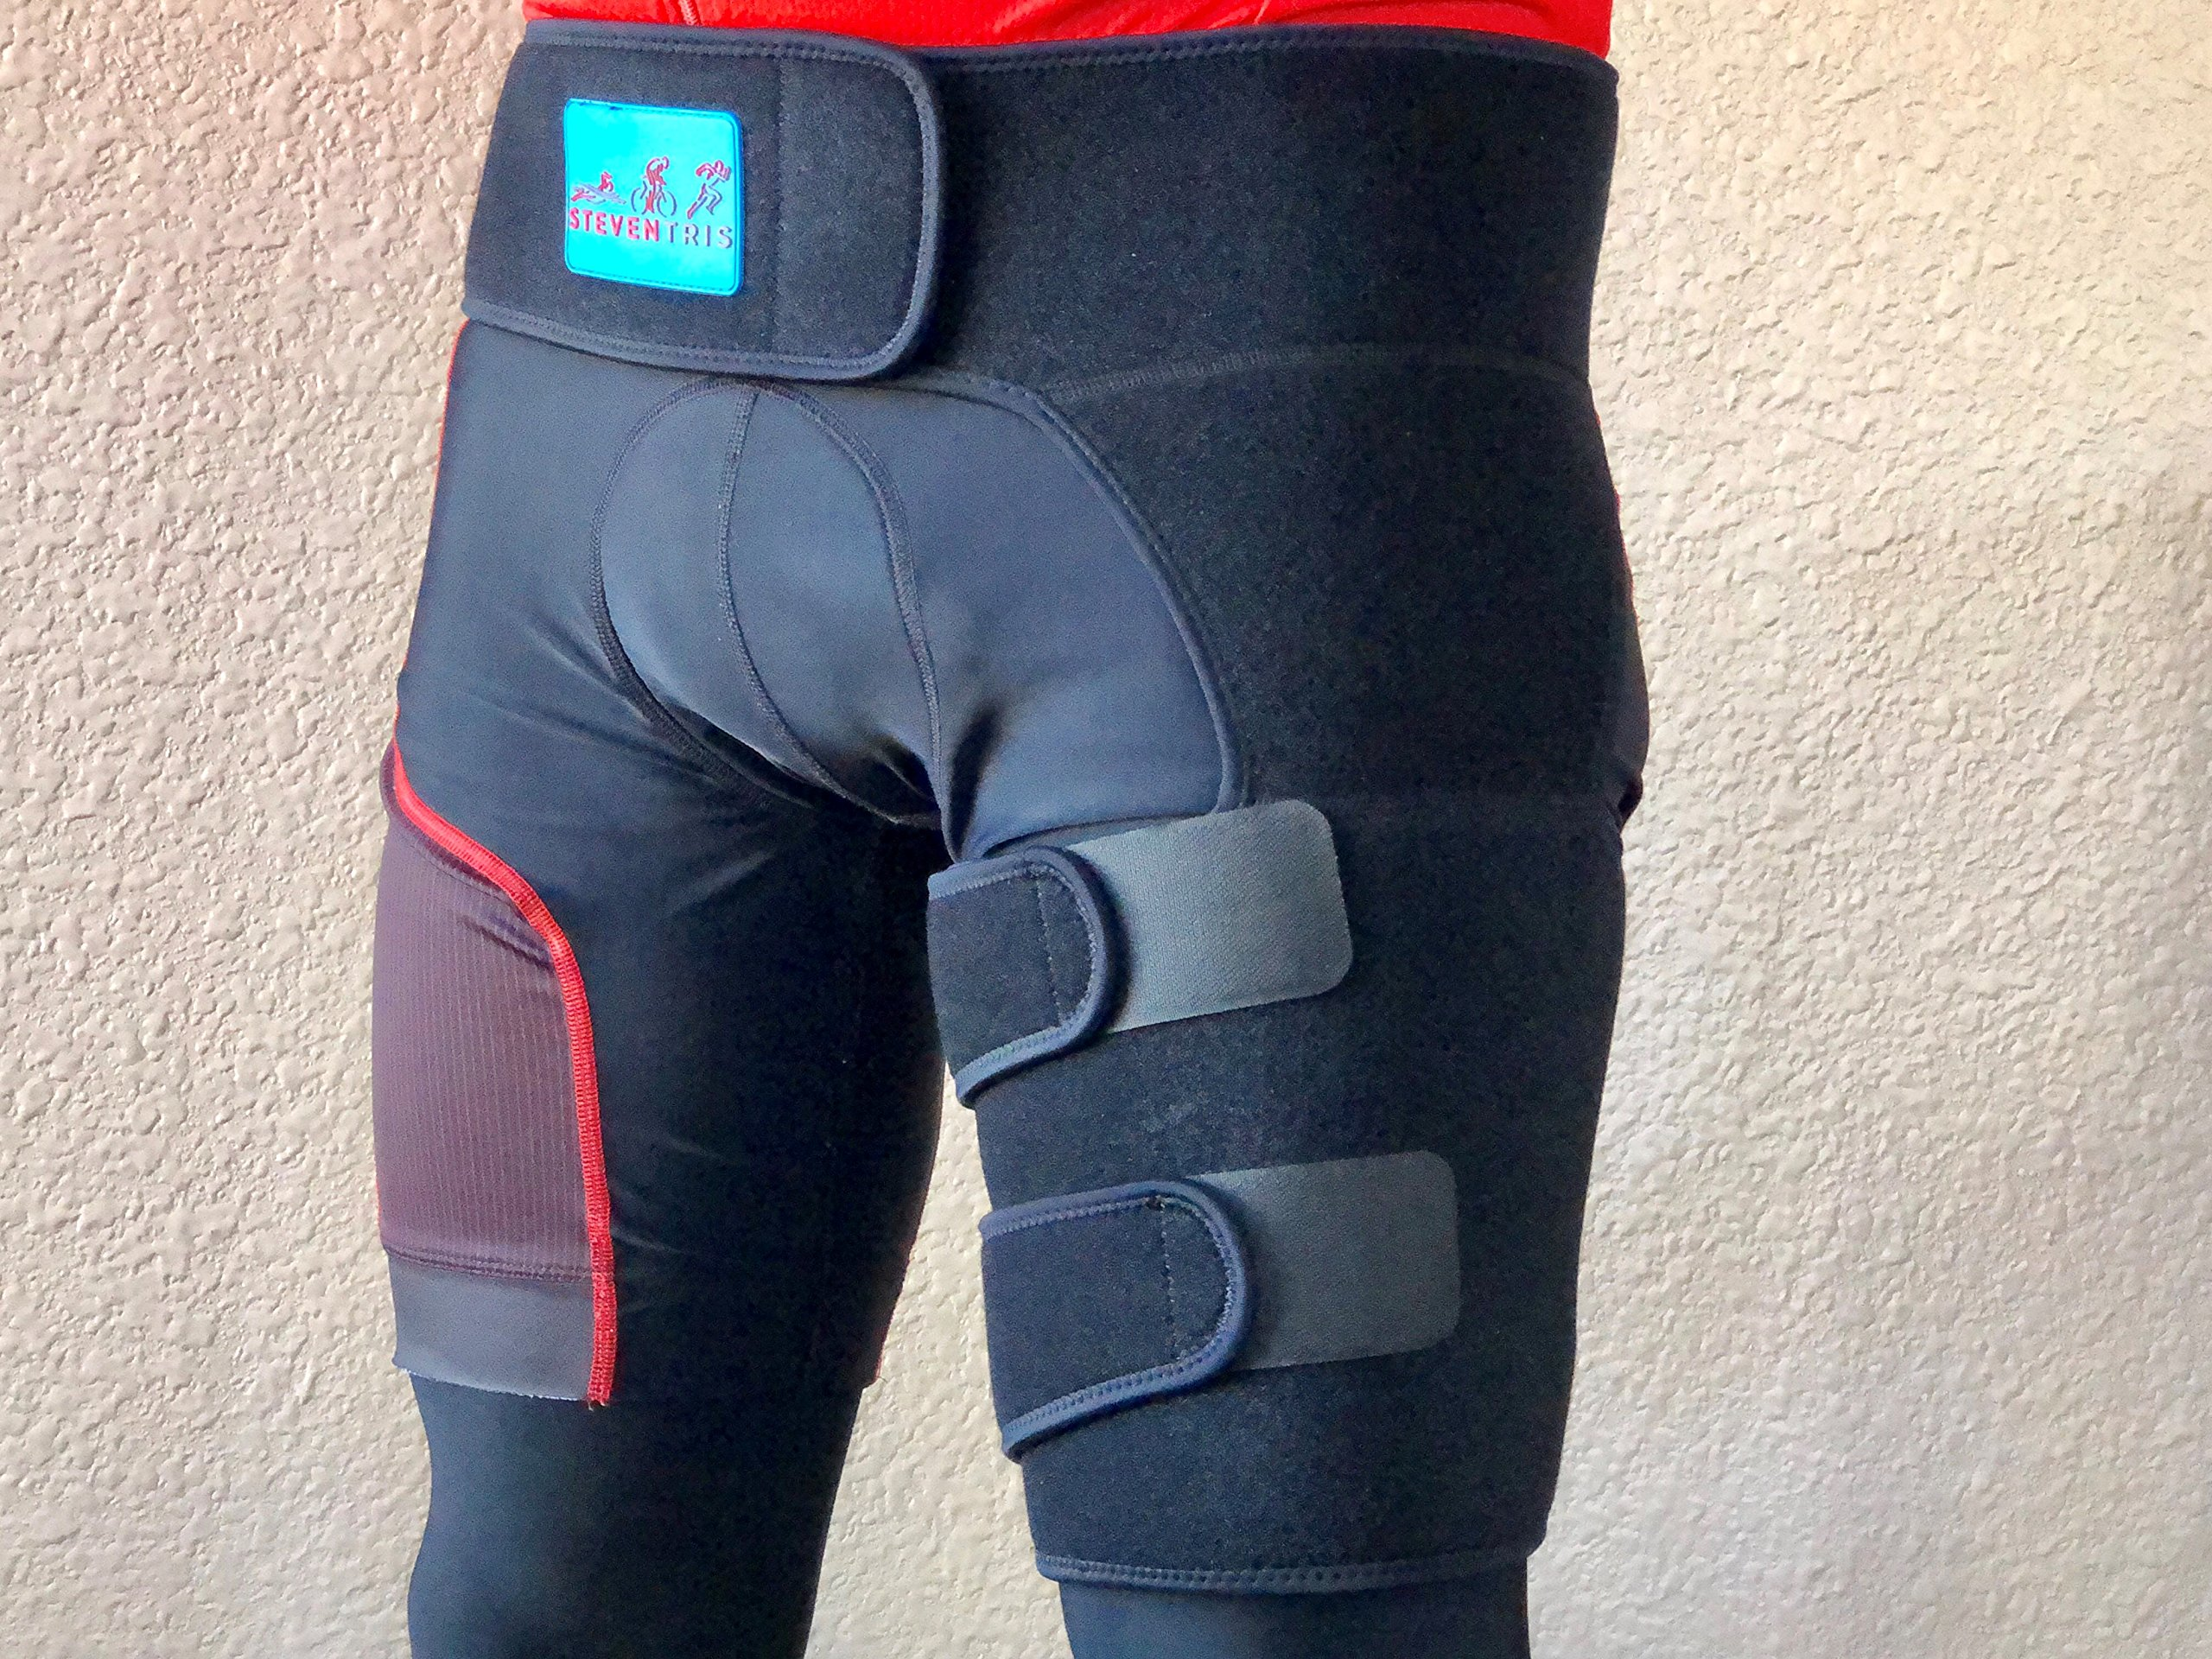 Groin Wrap. Strong Velcro, Stays in Place. Effective Relief for Groin, Hip, Thigh, Quad, Hamstring, Joints. Adjustable Support Brace With Exercises. For both Men & Woman